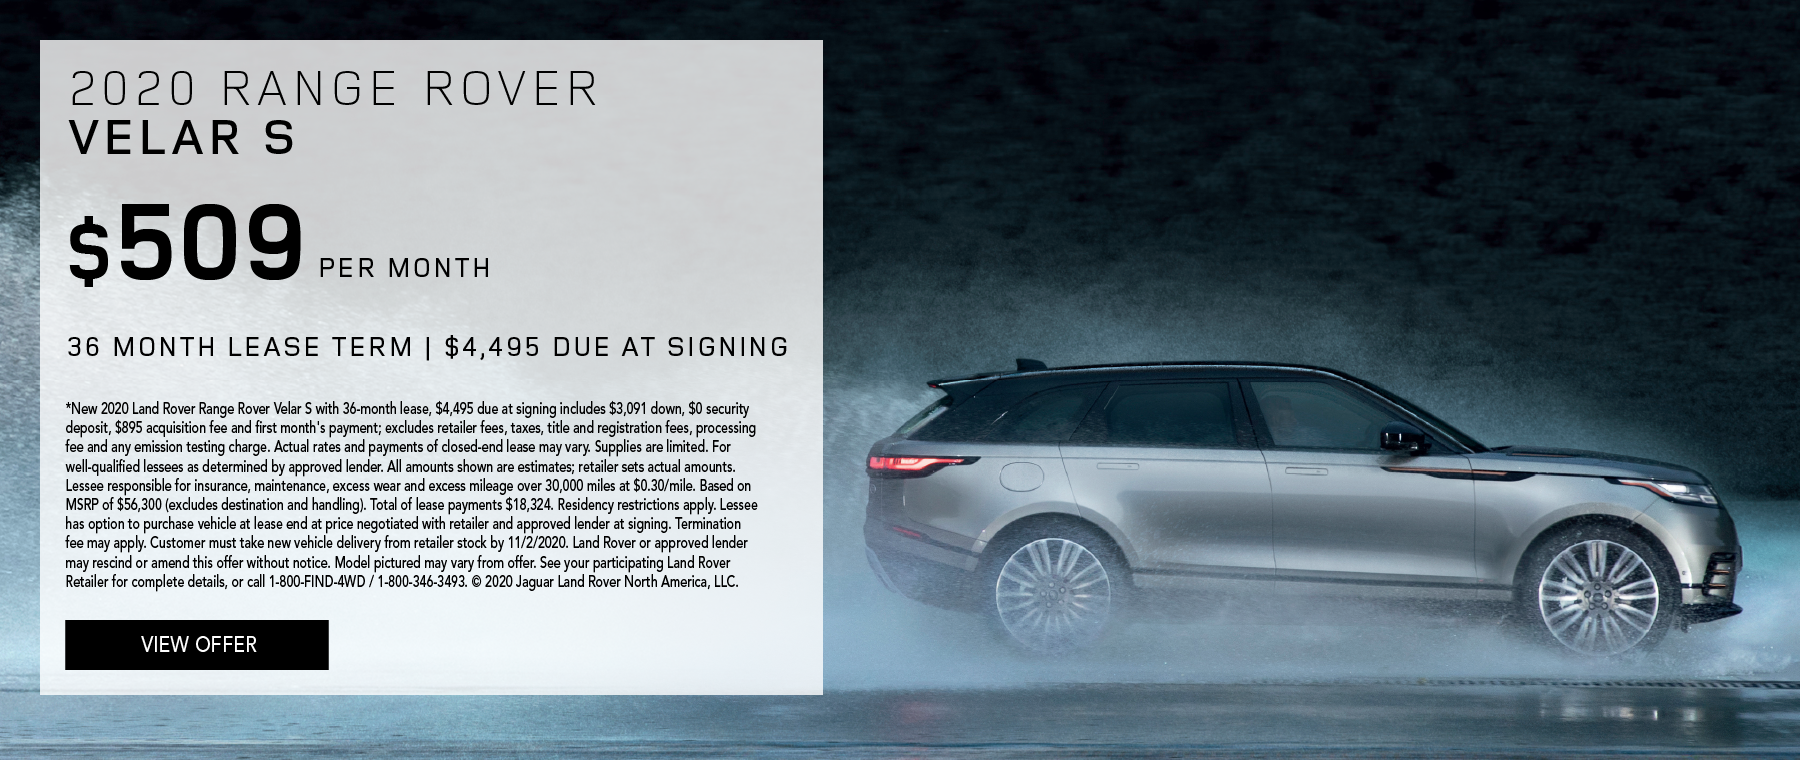 2020 RANGE ROVER VELAR S. $509 PER MONTH. 36 MONTH LEASE TERM. $4,495 CASH DUE AT SIGNING. $0 SECURITY DEPOSIT. 10,000 MILES PER YEAR. EXCLUDES RETAILER FEES, TAXES, TITLE AND REGISTRATION FEES, PROCESSING FEE AND ANY EMISSION TESTING CHARGE. ENDS 11/2/2020.